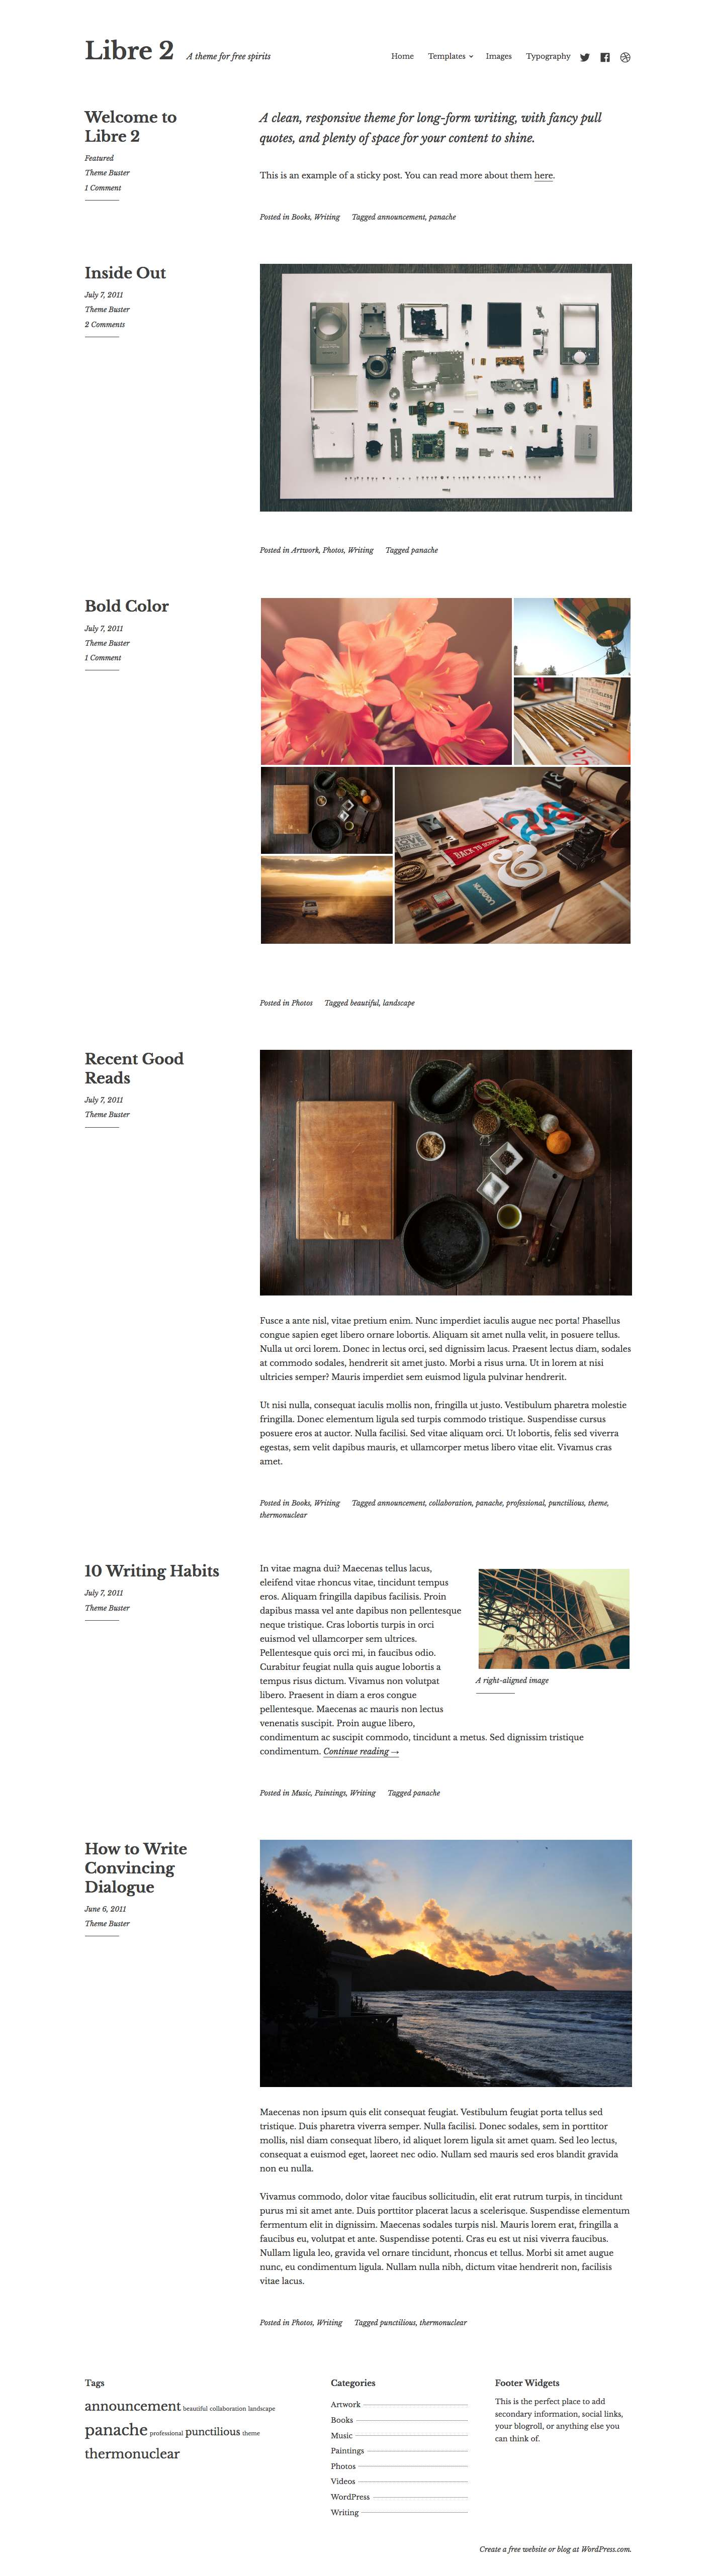 Libre 2 WordPress Theme